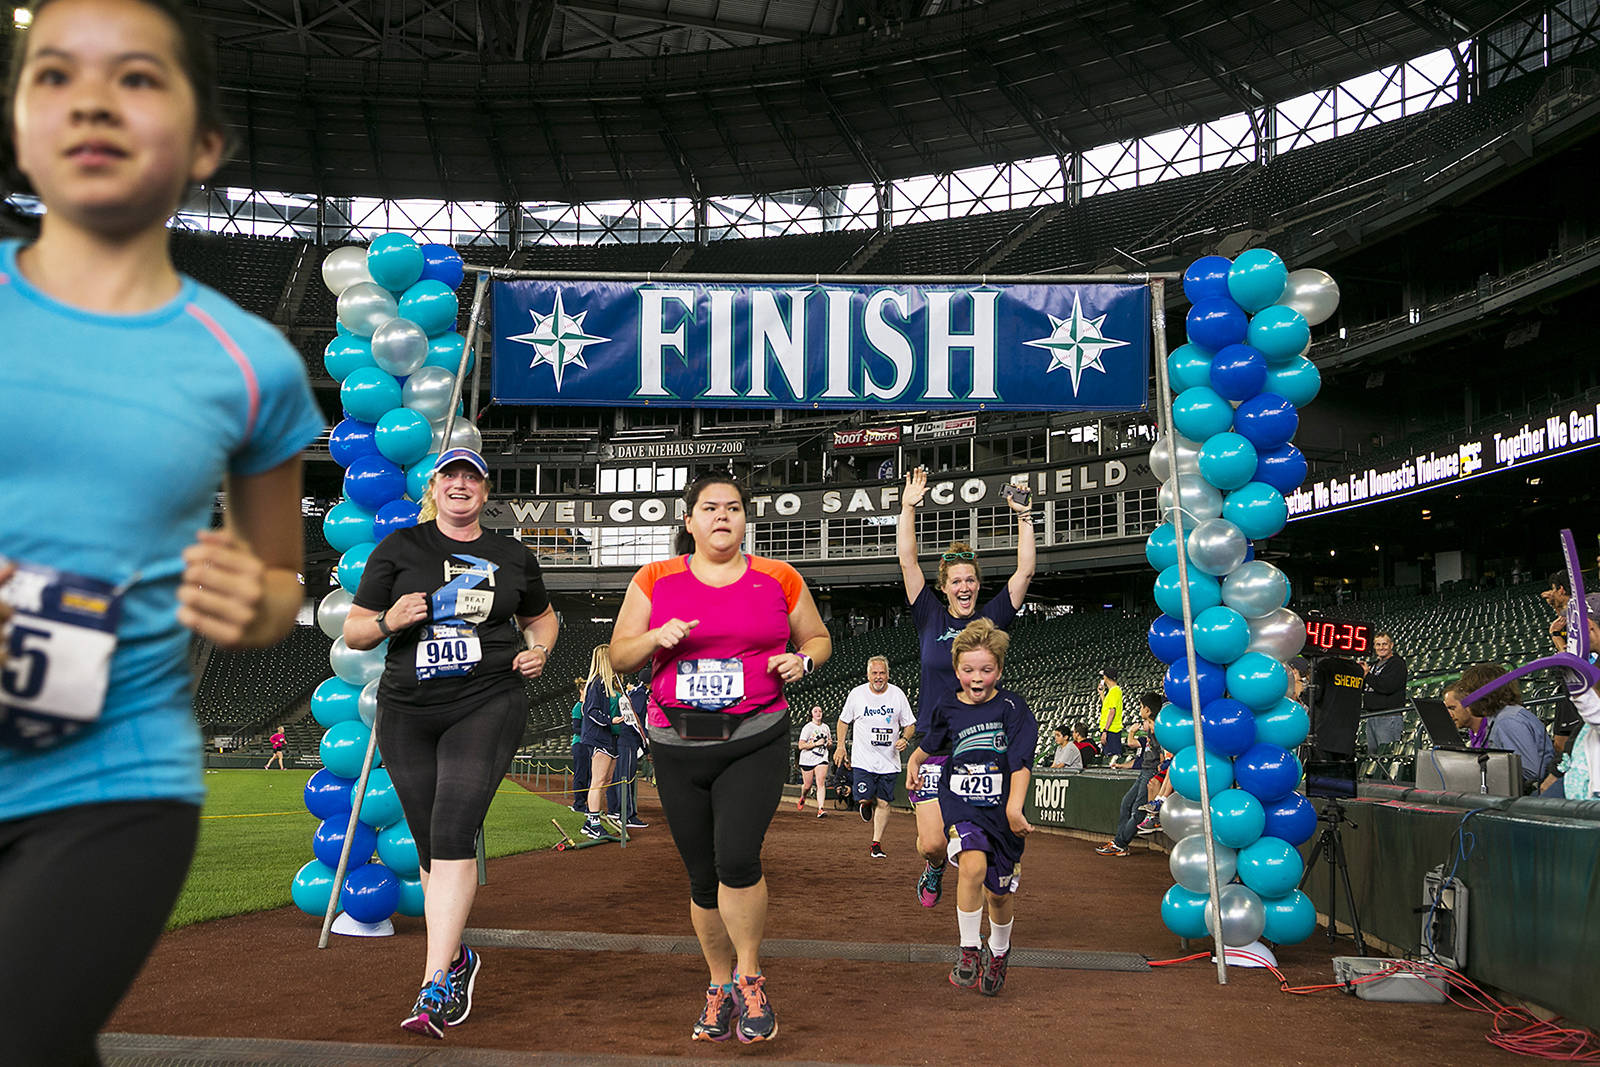 Domestic violence IS preventable: July 21's Refuse To Abuse 5k is a unique run/walk through every level of Safeco Field, from the players' tunnel to the final lap around the field.